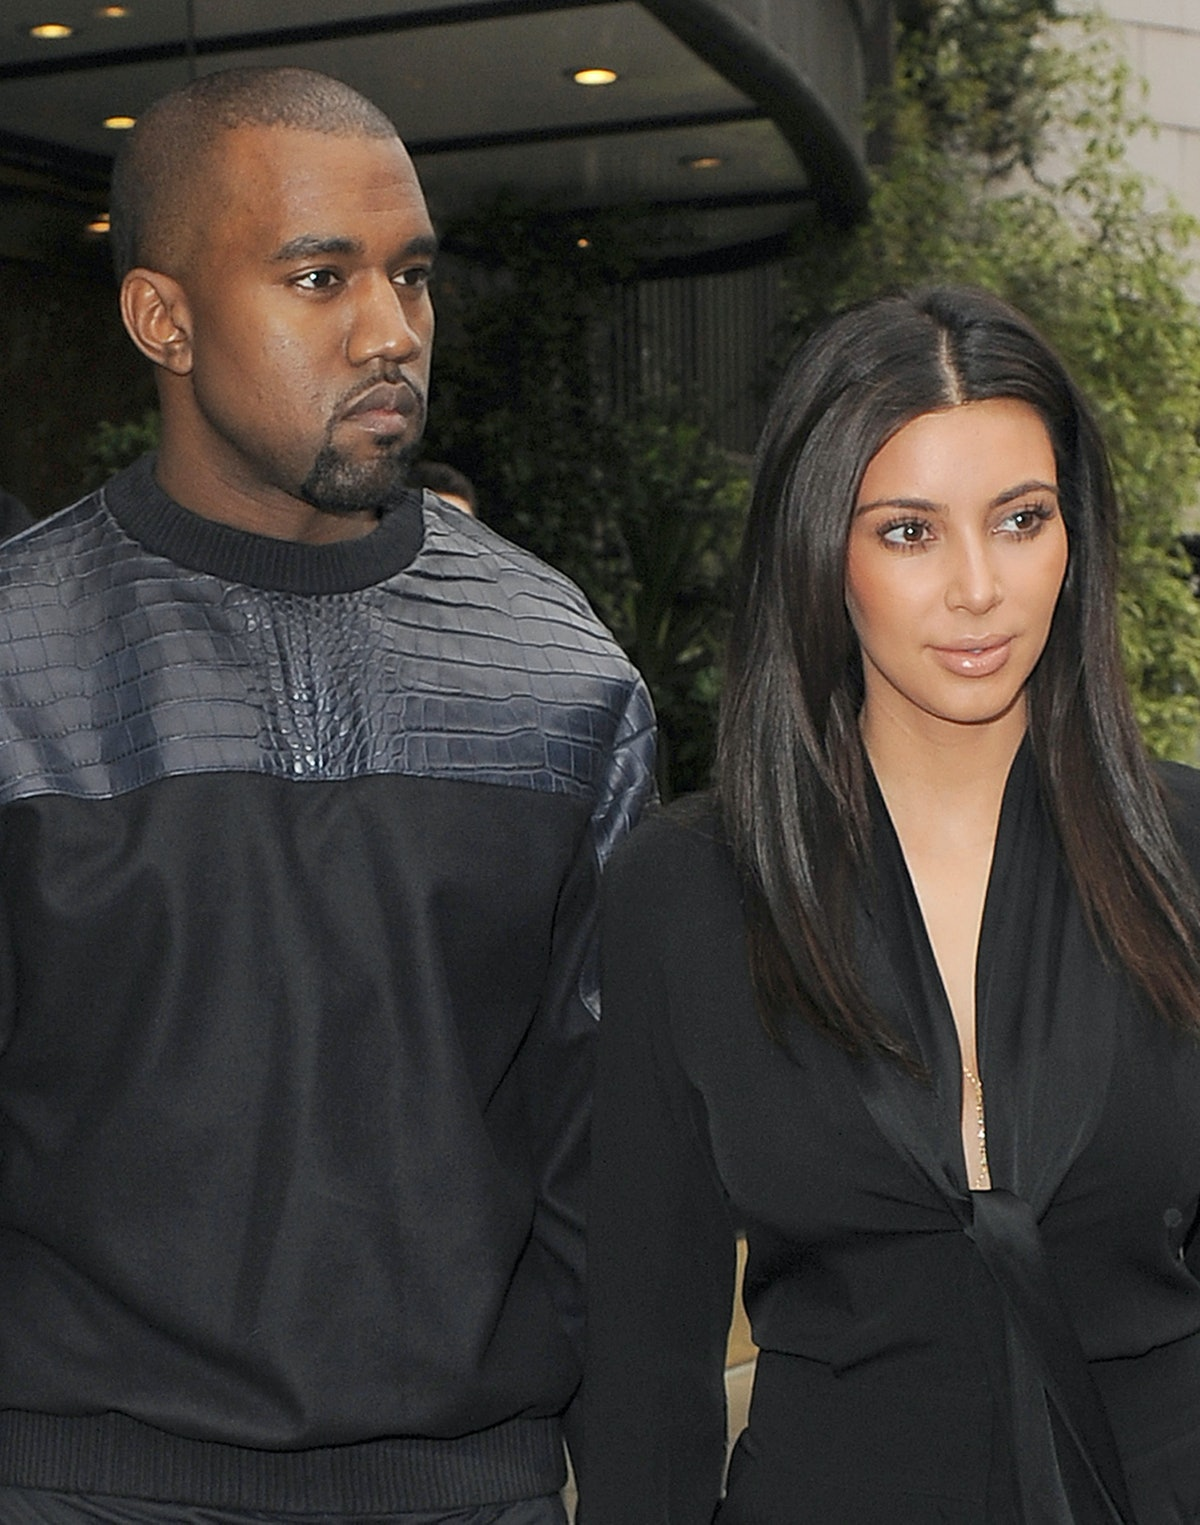 LONDON, ENGLAND - MAY 22: Kim Kardashian and her boyfriend Kanye West leave their hotel on May 22, 2...